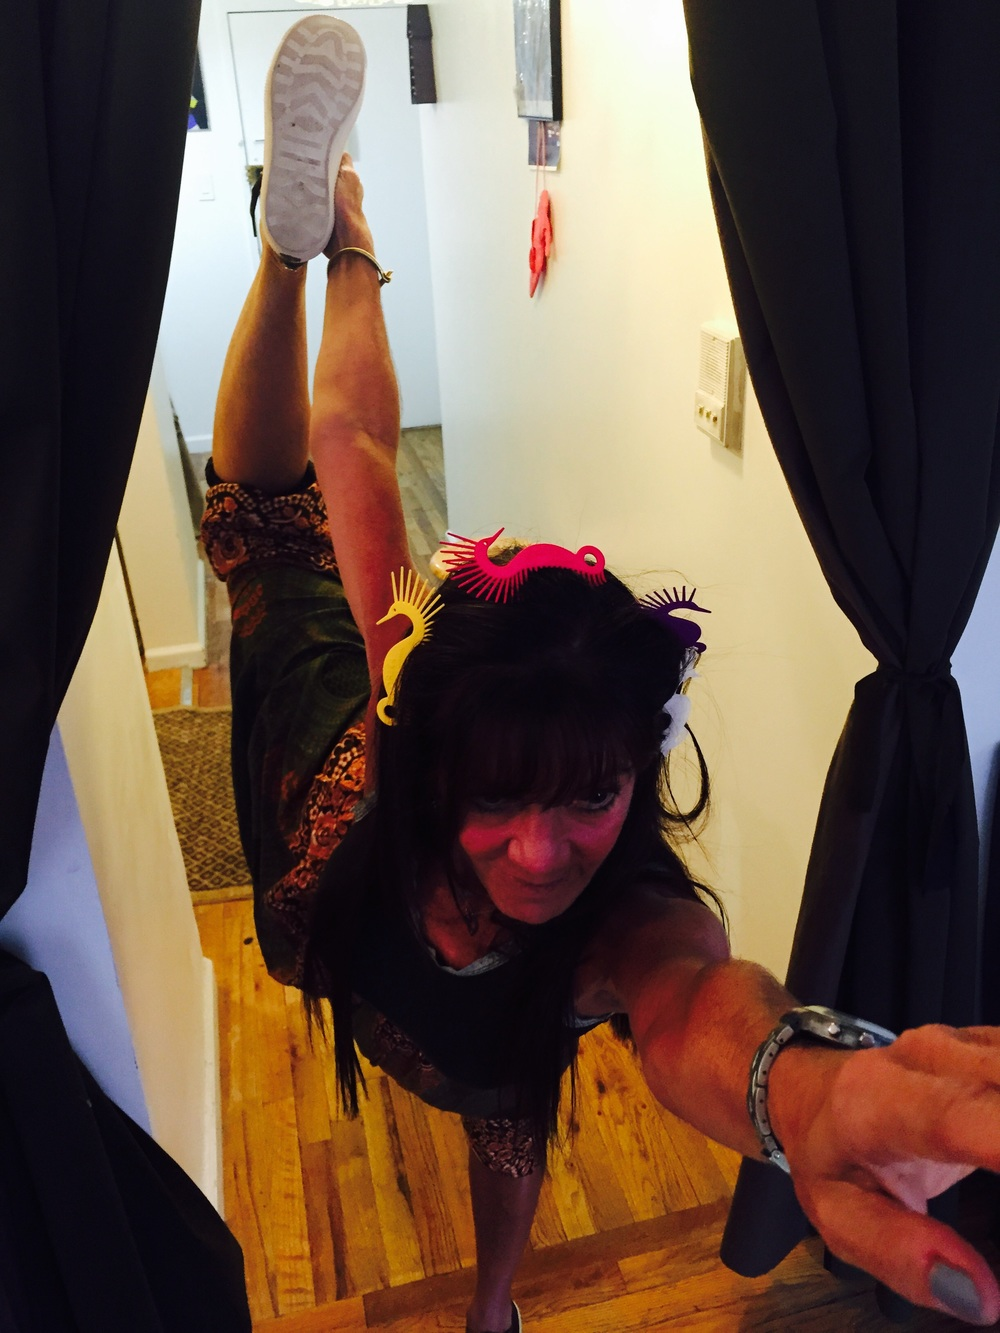 Here is Tracy doing her advance yoga move.